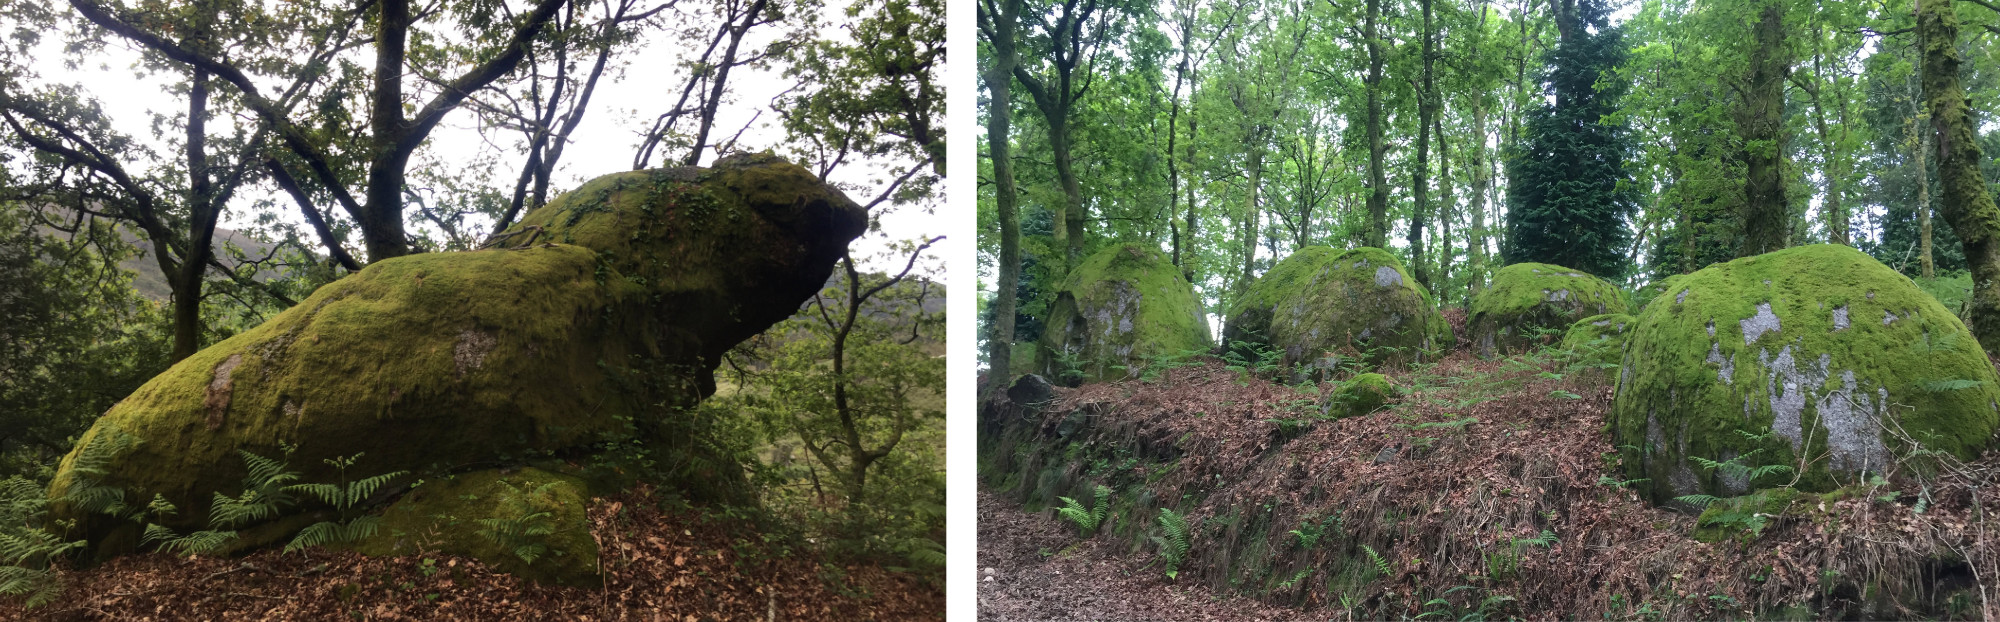 Two pictures of mossy boulders